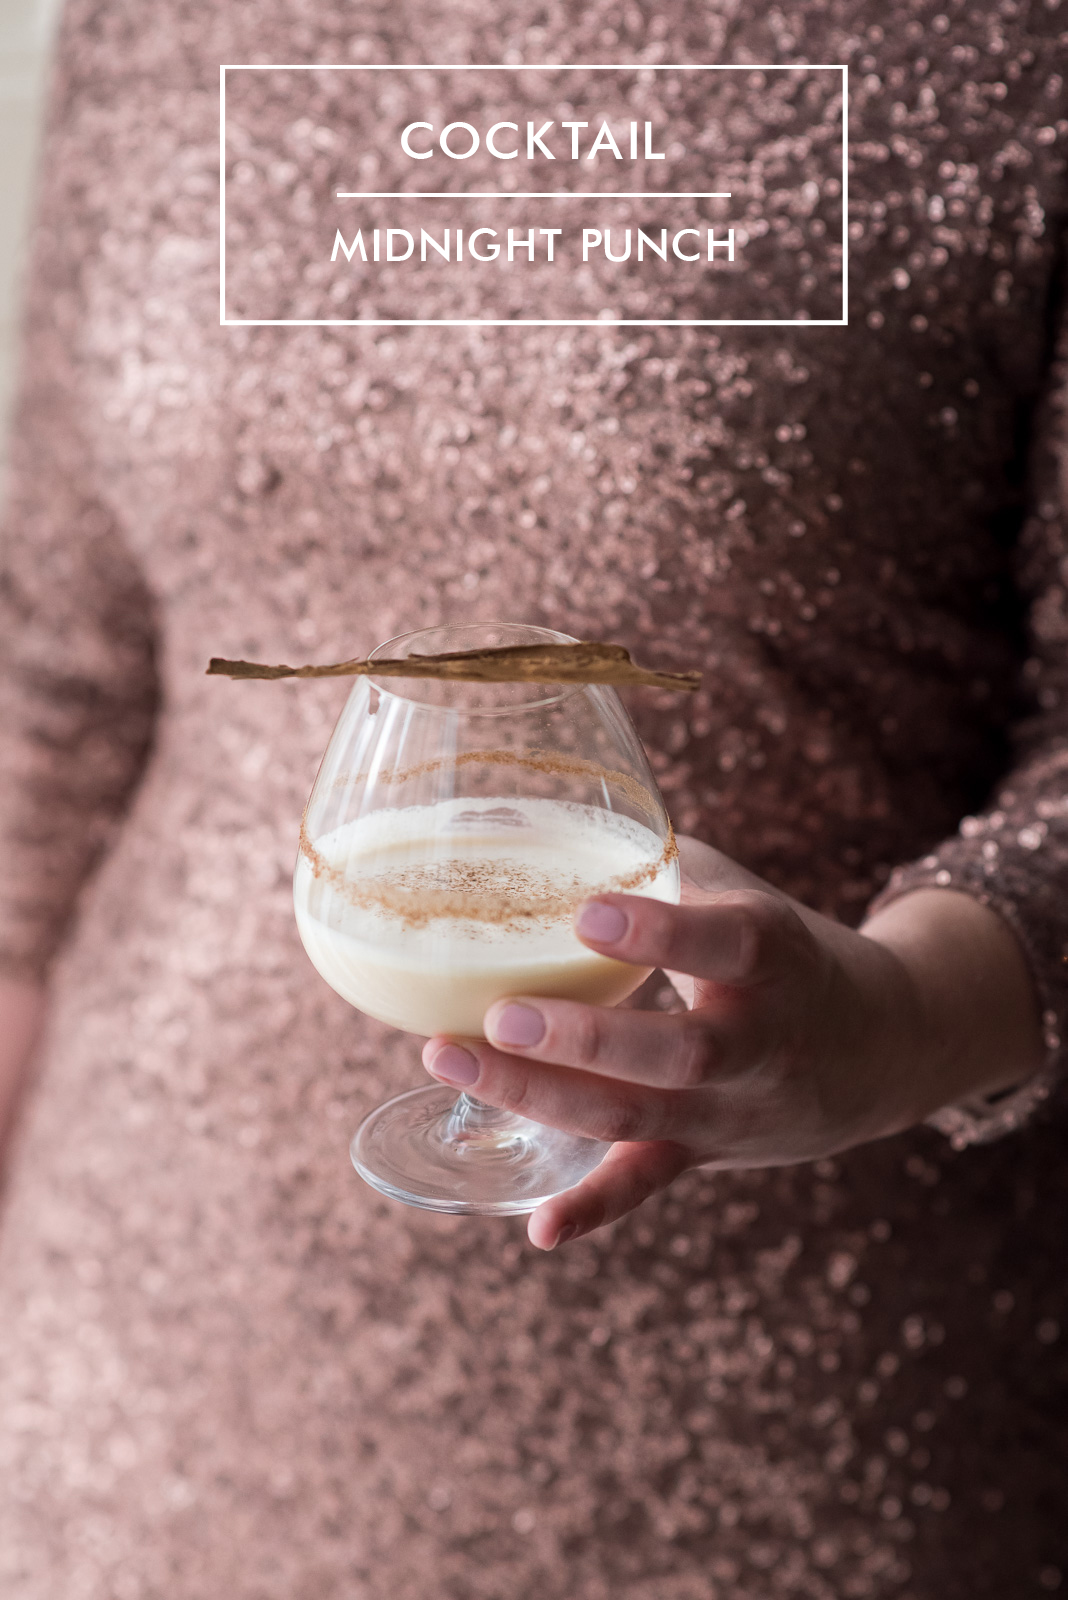 Contemporary Classic Christmas Cocktails - Midnight Punch (4A)jpg